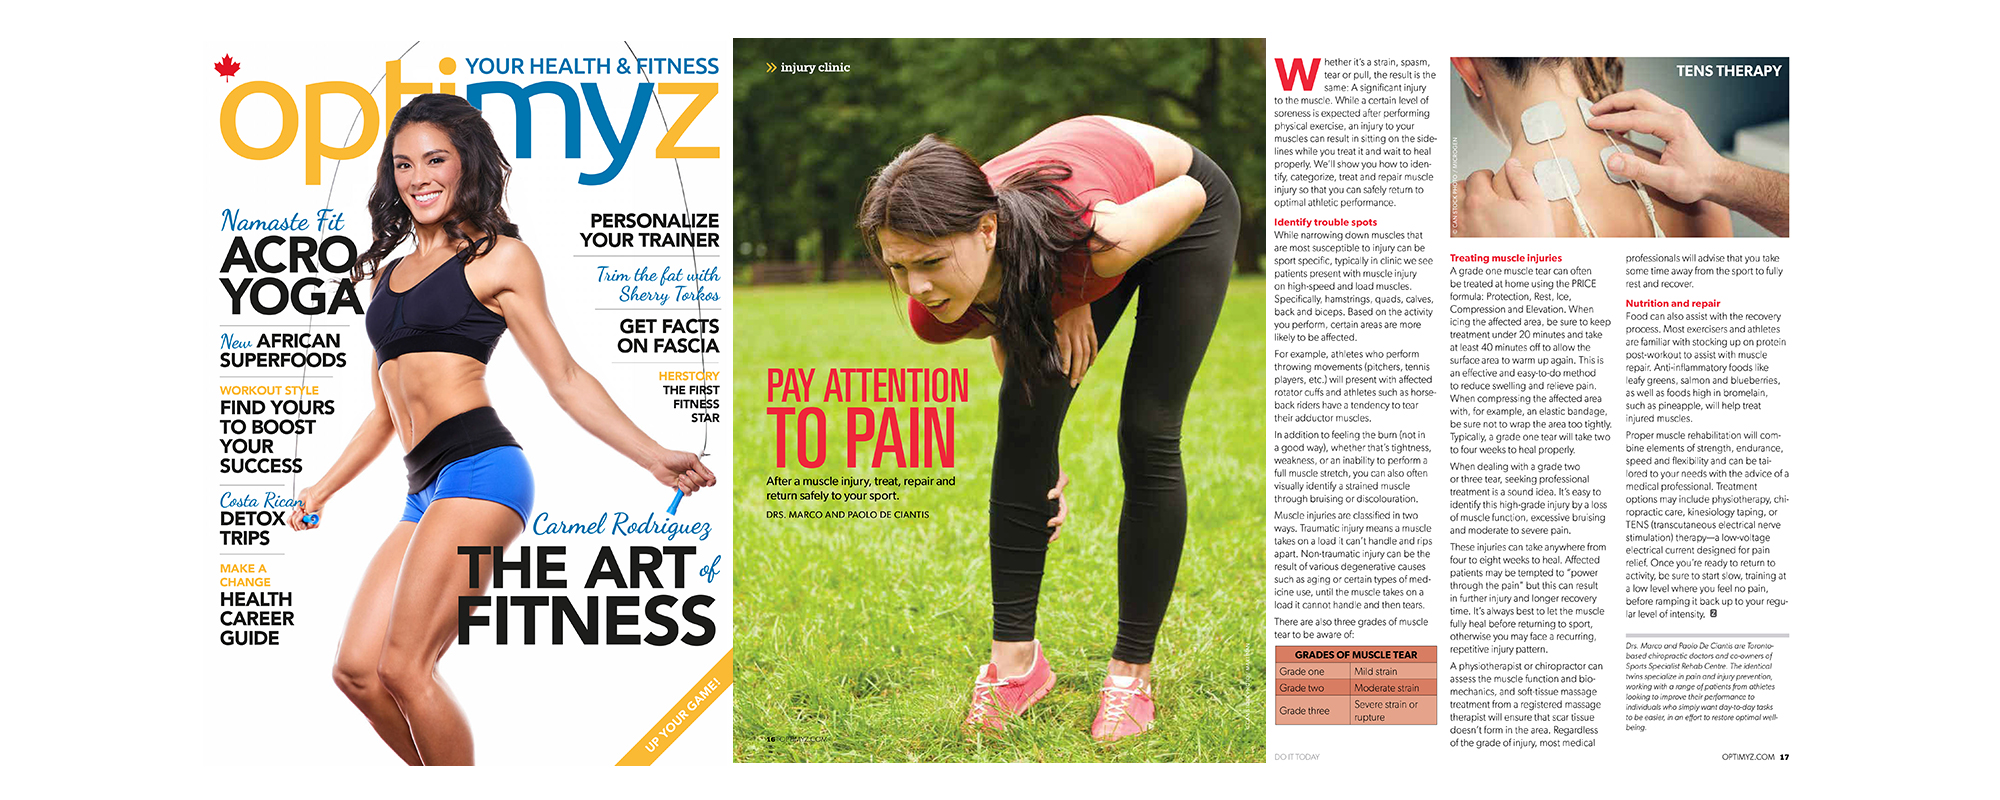 Check out the recent issue of Optimyz magazine to read our latest articles!